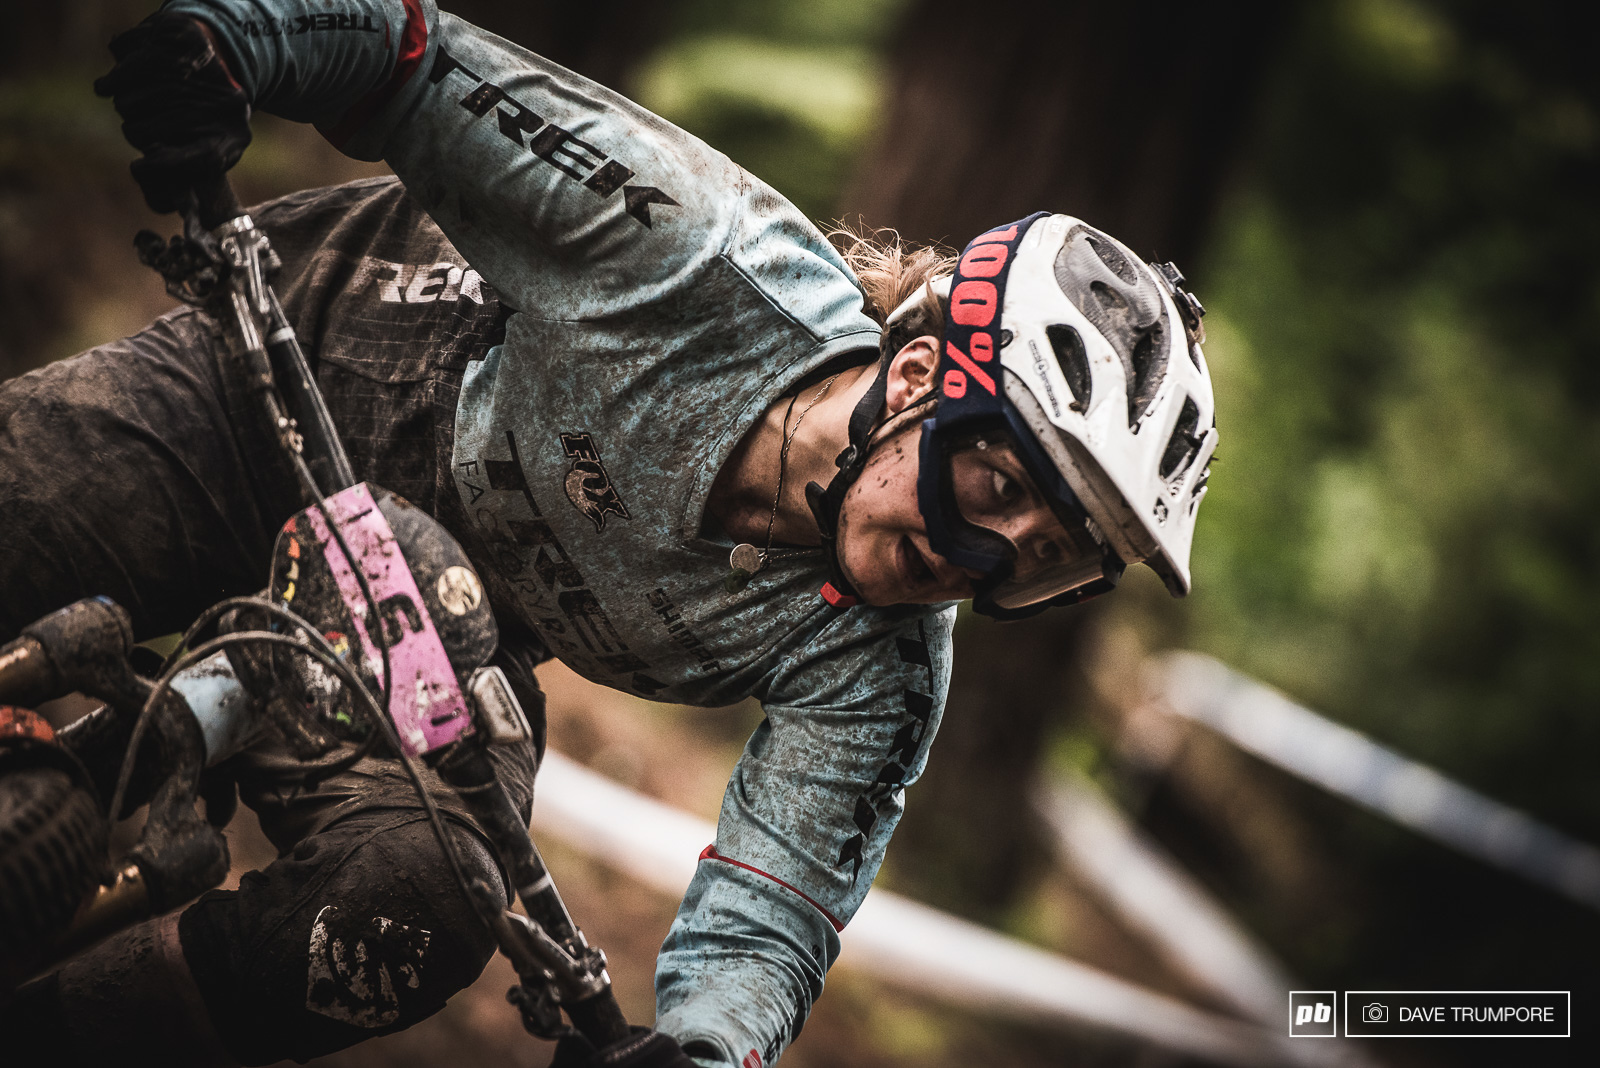 Katy Winton won her first EWS stage today and would come 5th overall to kick off the season.